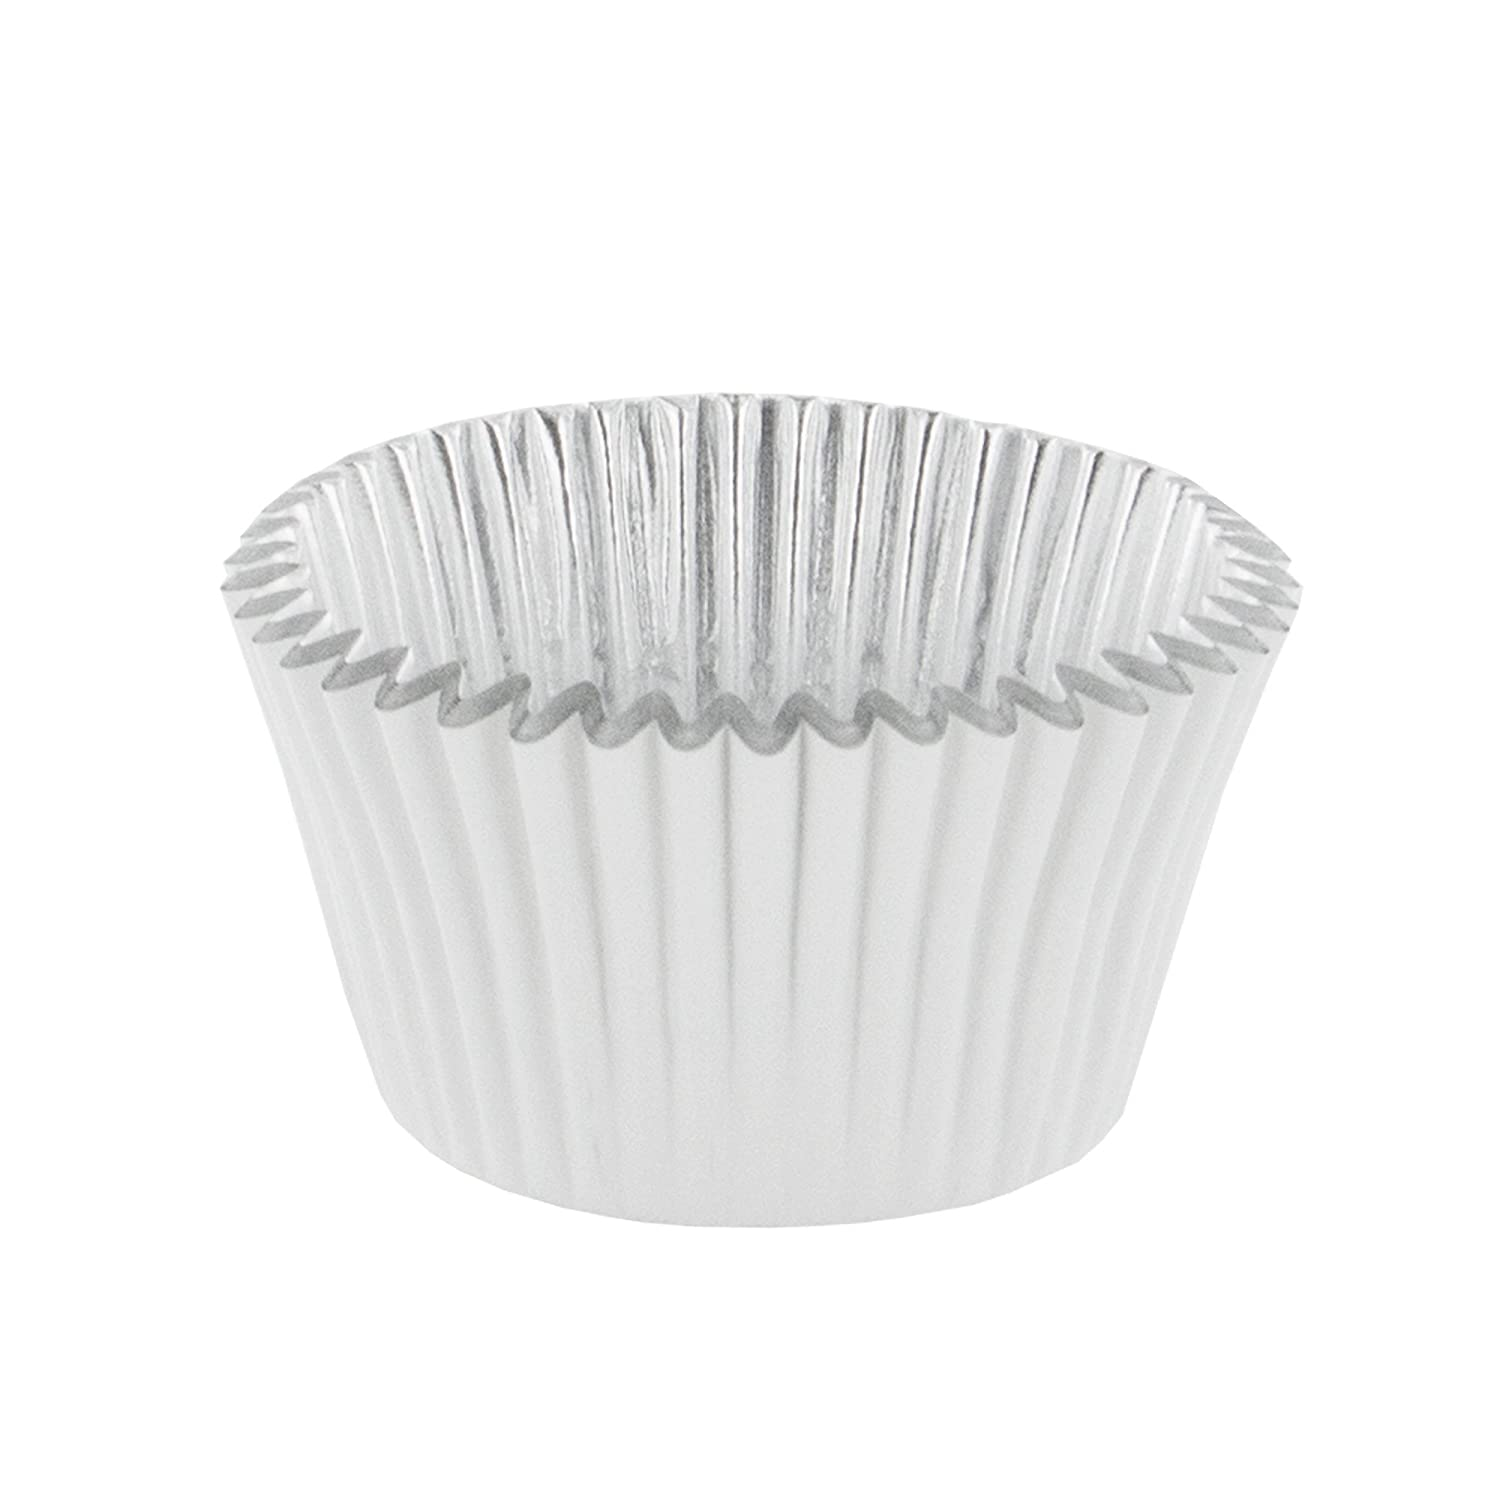 Standard PME BC769 Deep Foil Lined Cupcake Baking Cups White